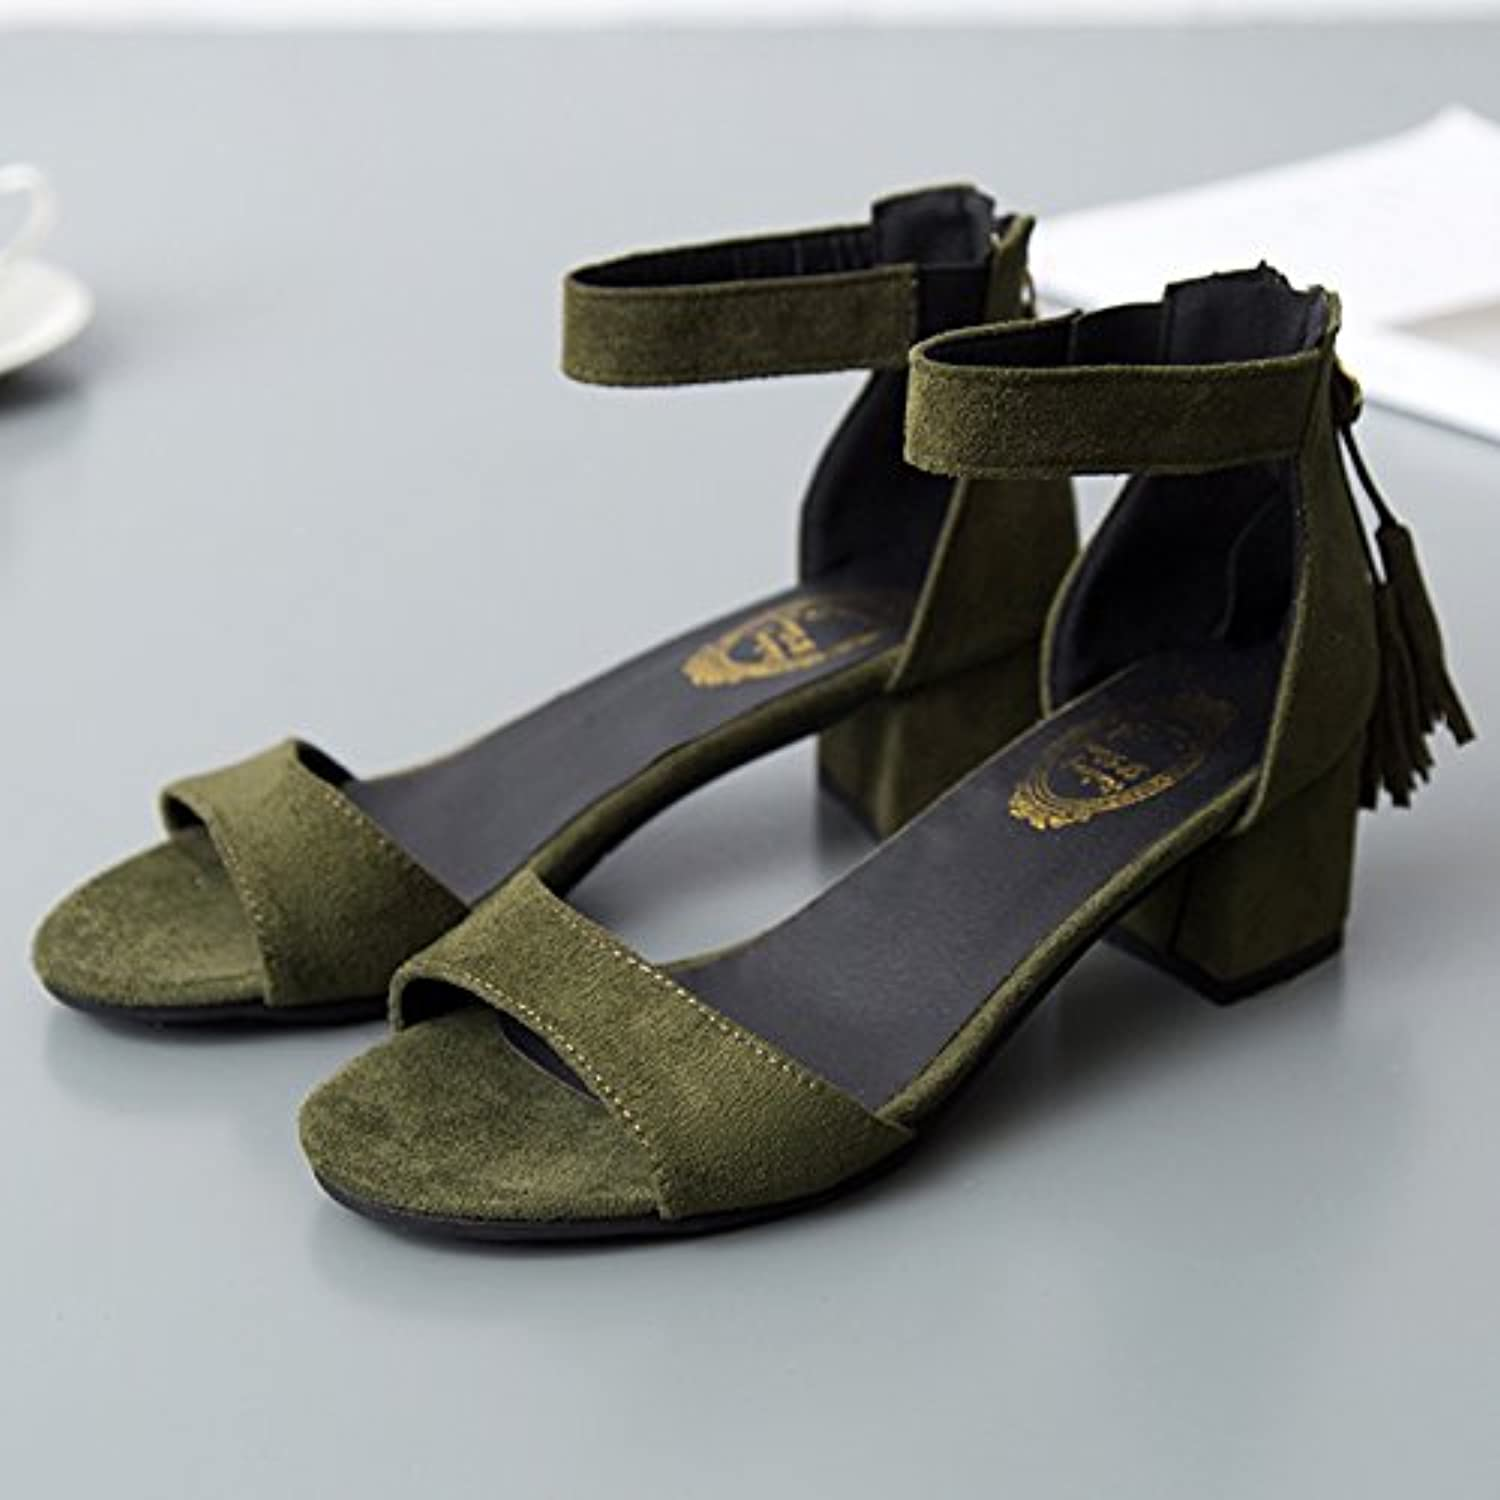 GAOLIM Thick With High-Heeled Sandals Women Flat shoes With A Female-Su Students shoes And Versatile Women'S shoes